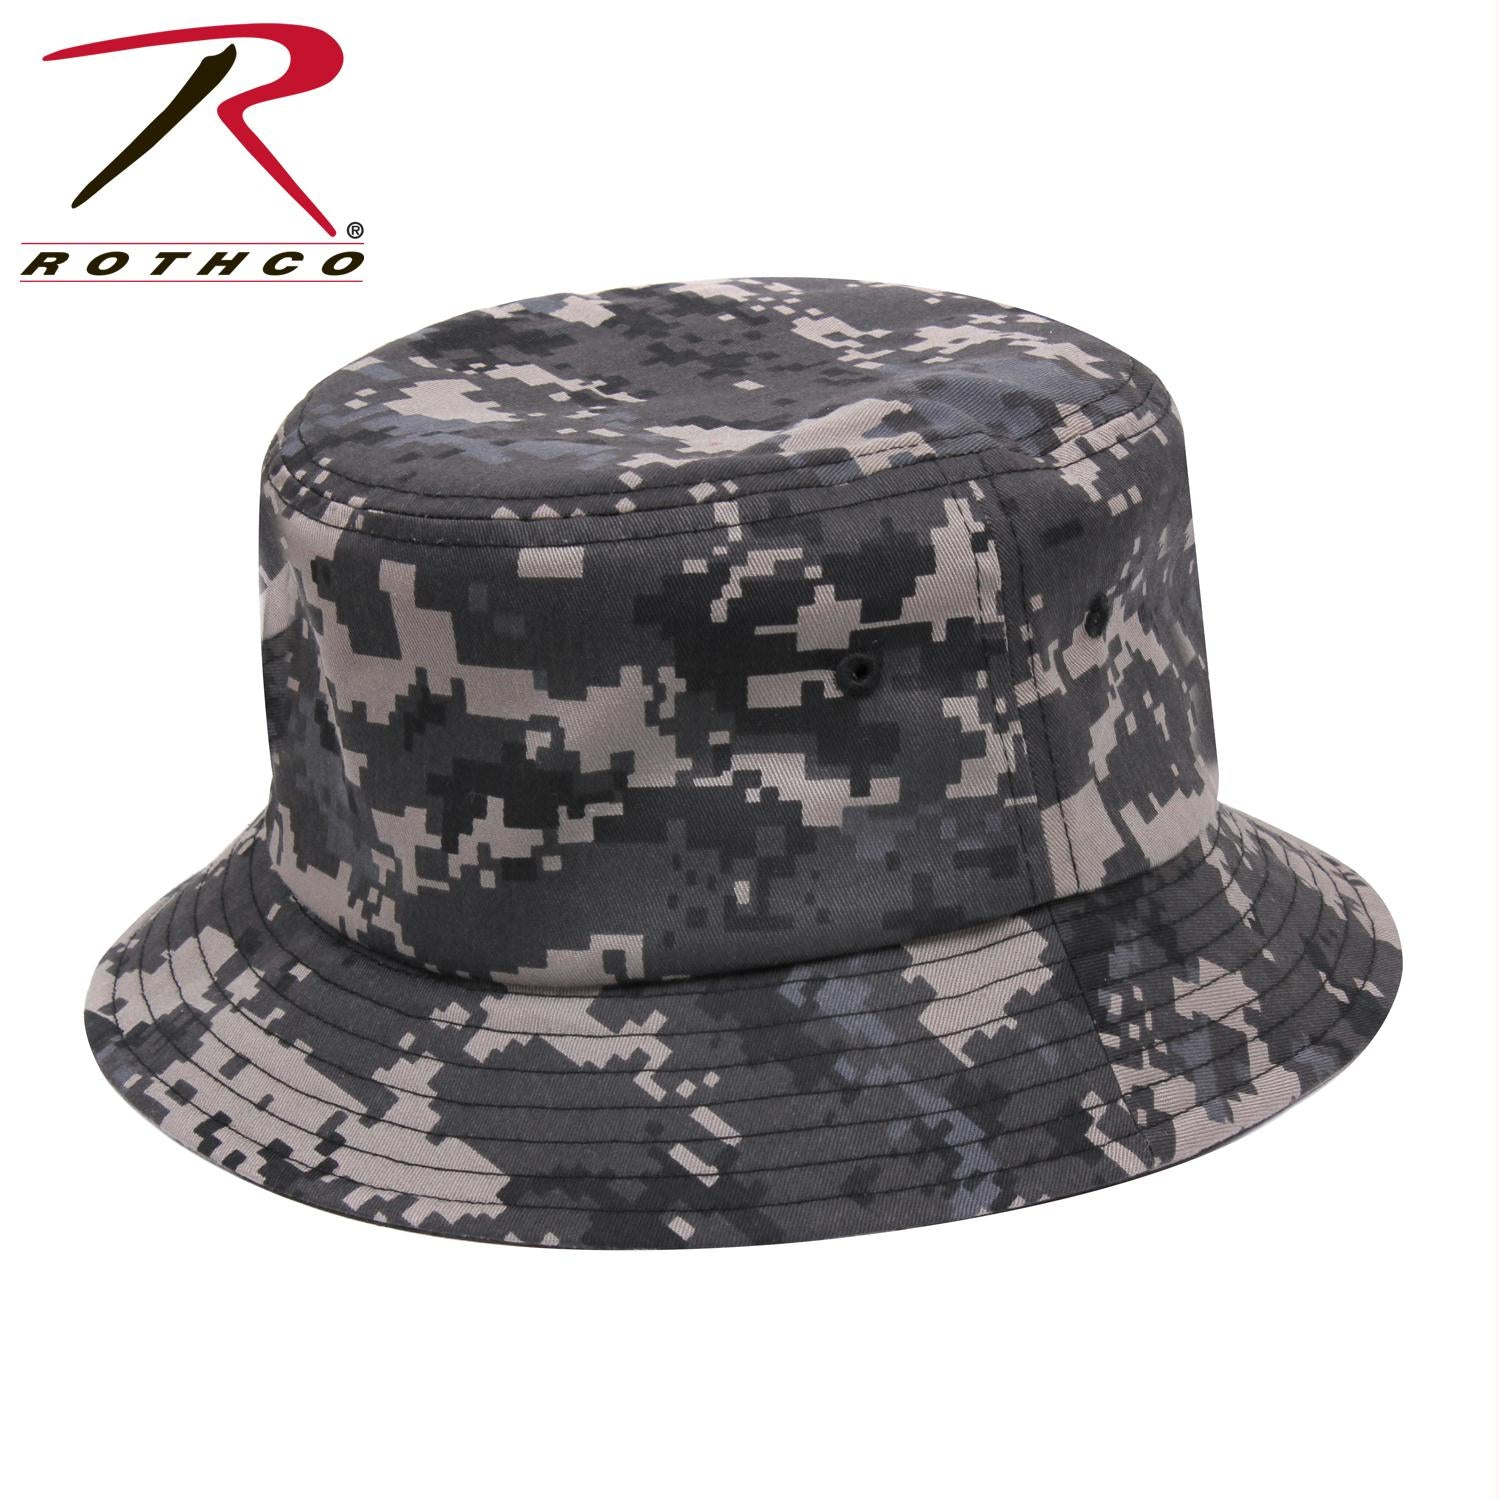 Rothco Bucket Hat - Subdued Urban Digital Camo / L/XL